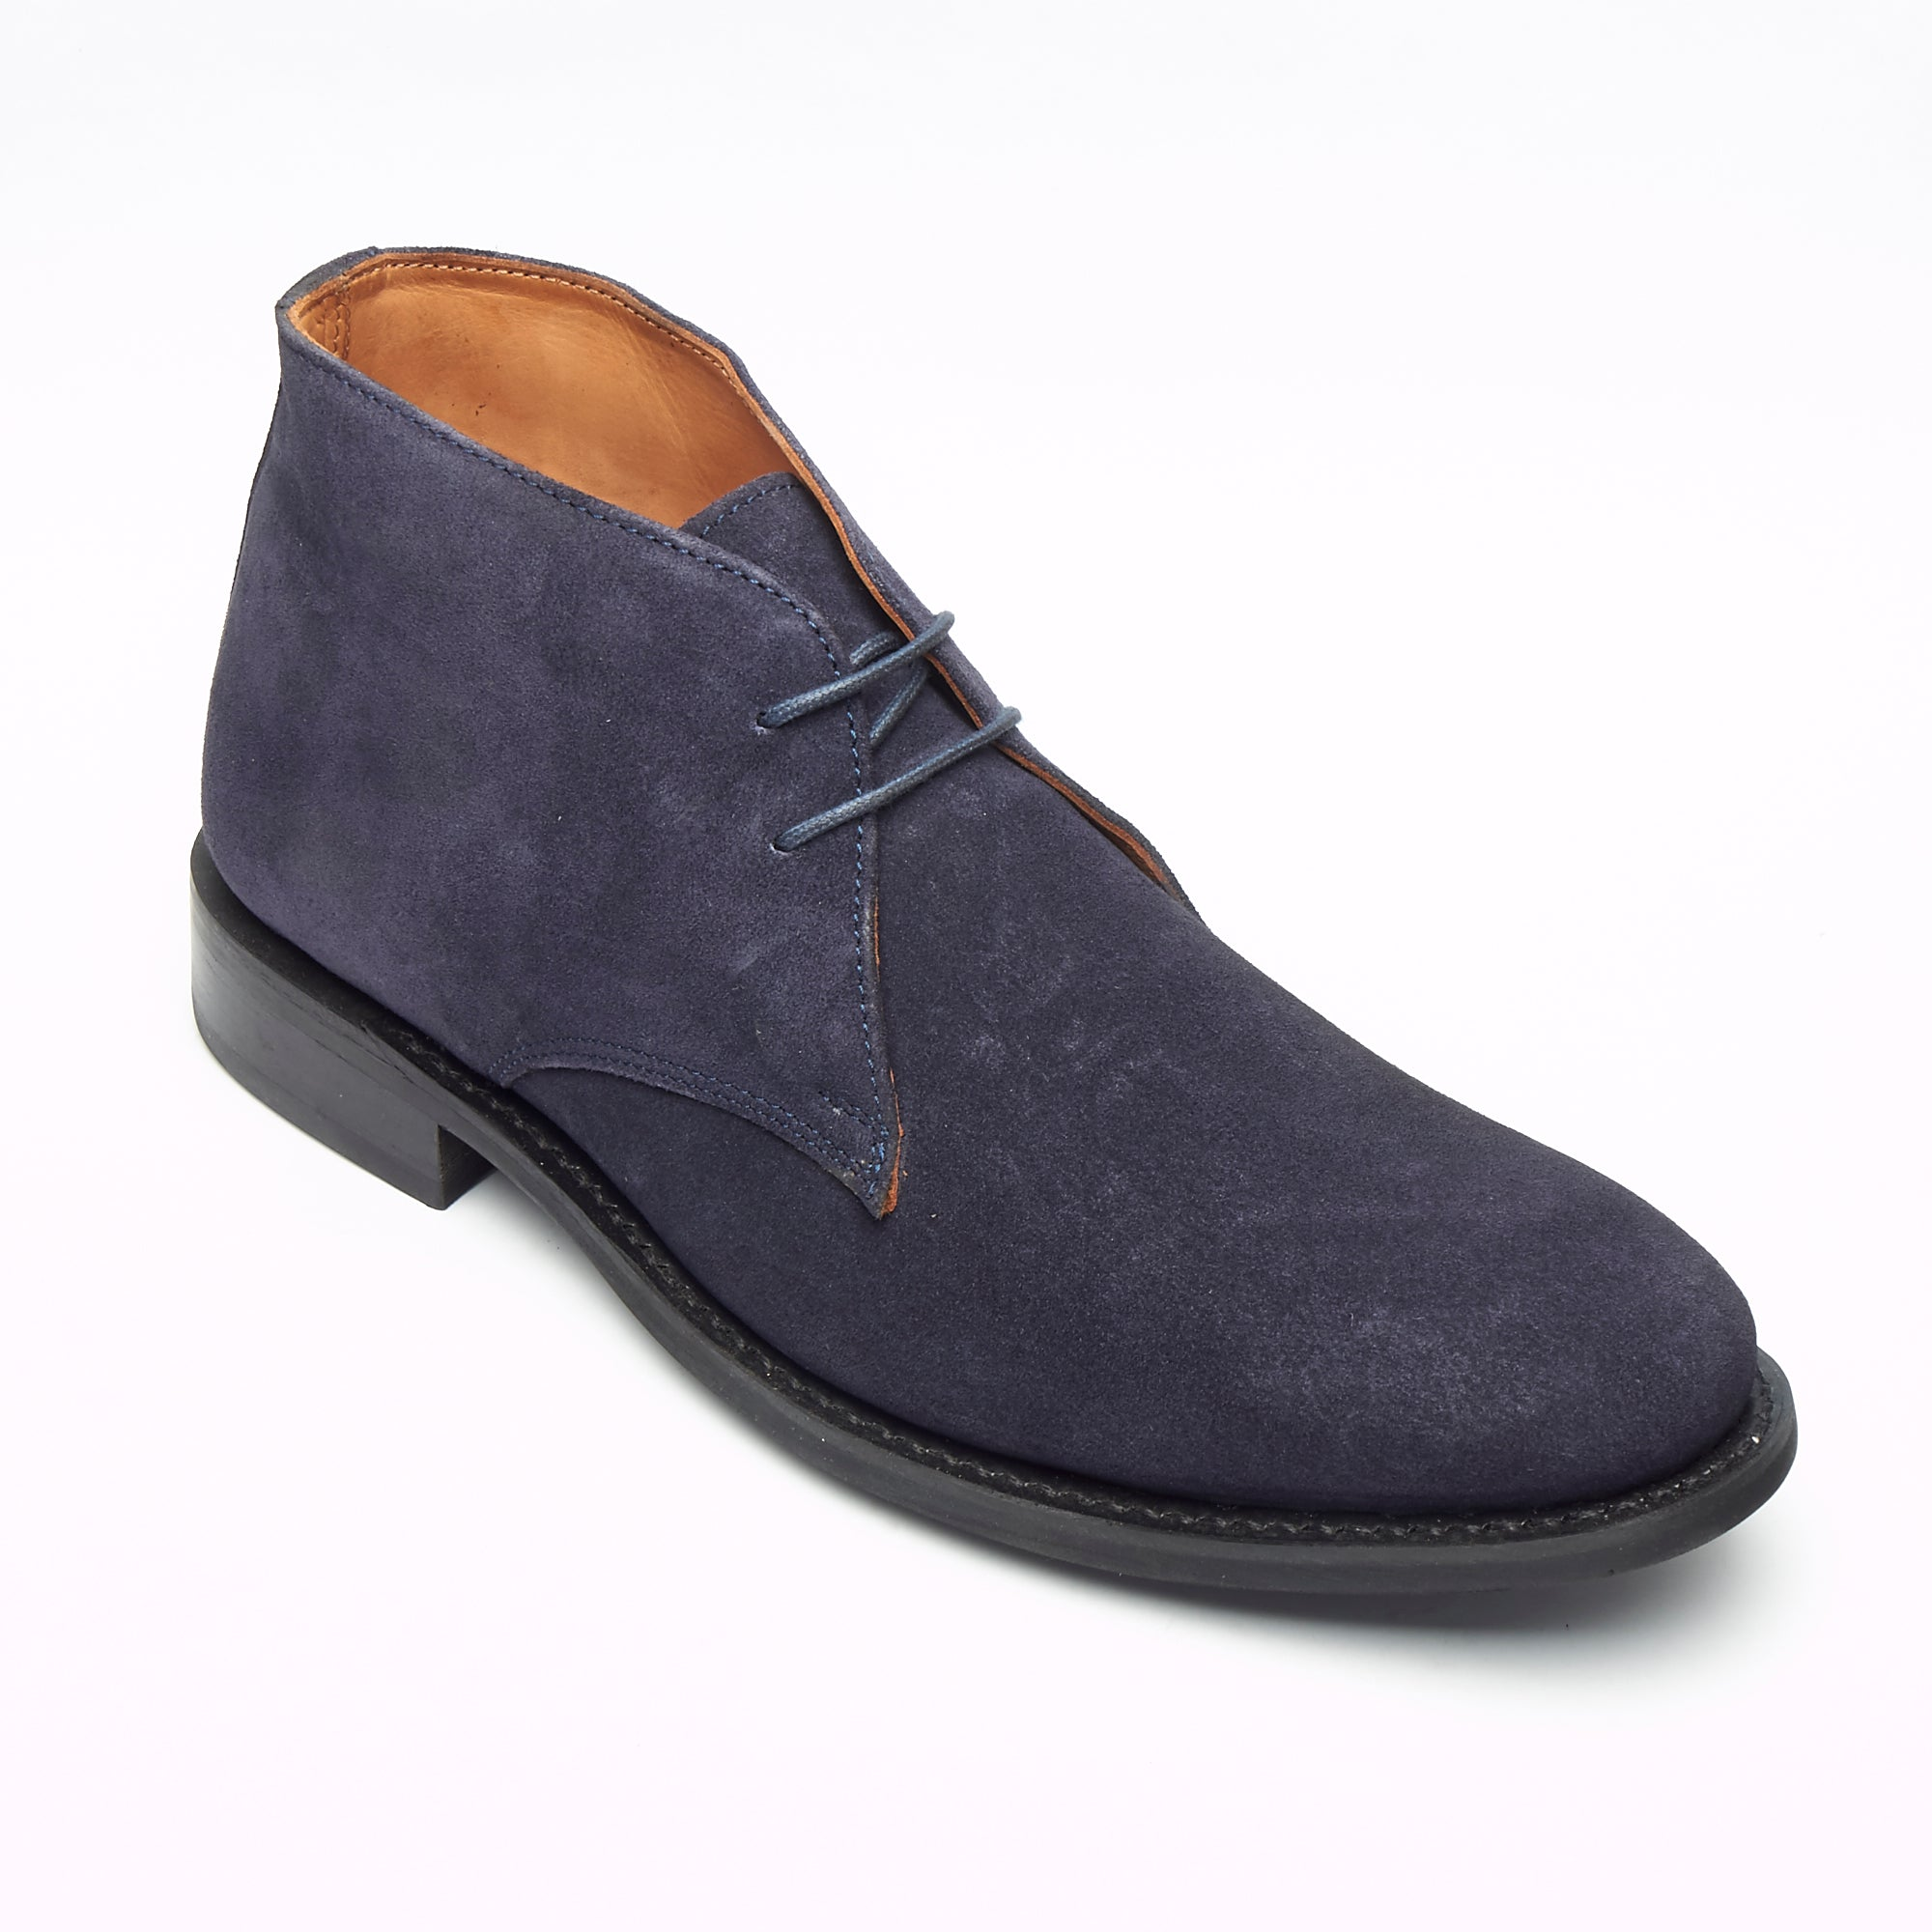 Mens Goodyear Welted Suede Lace Up Ankle Boots - 35515 Navy Blue